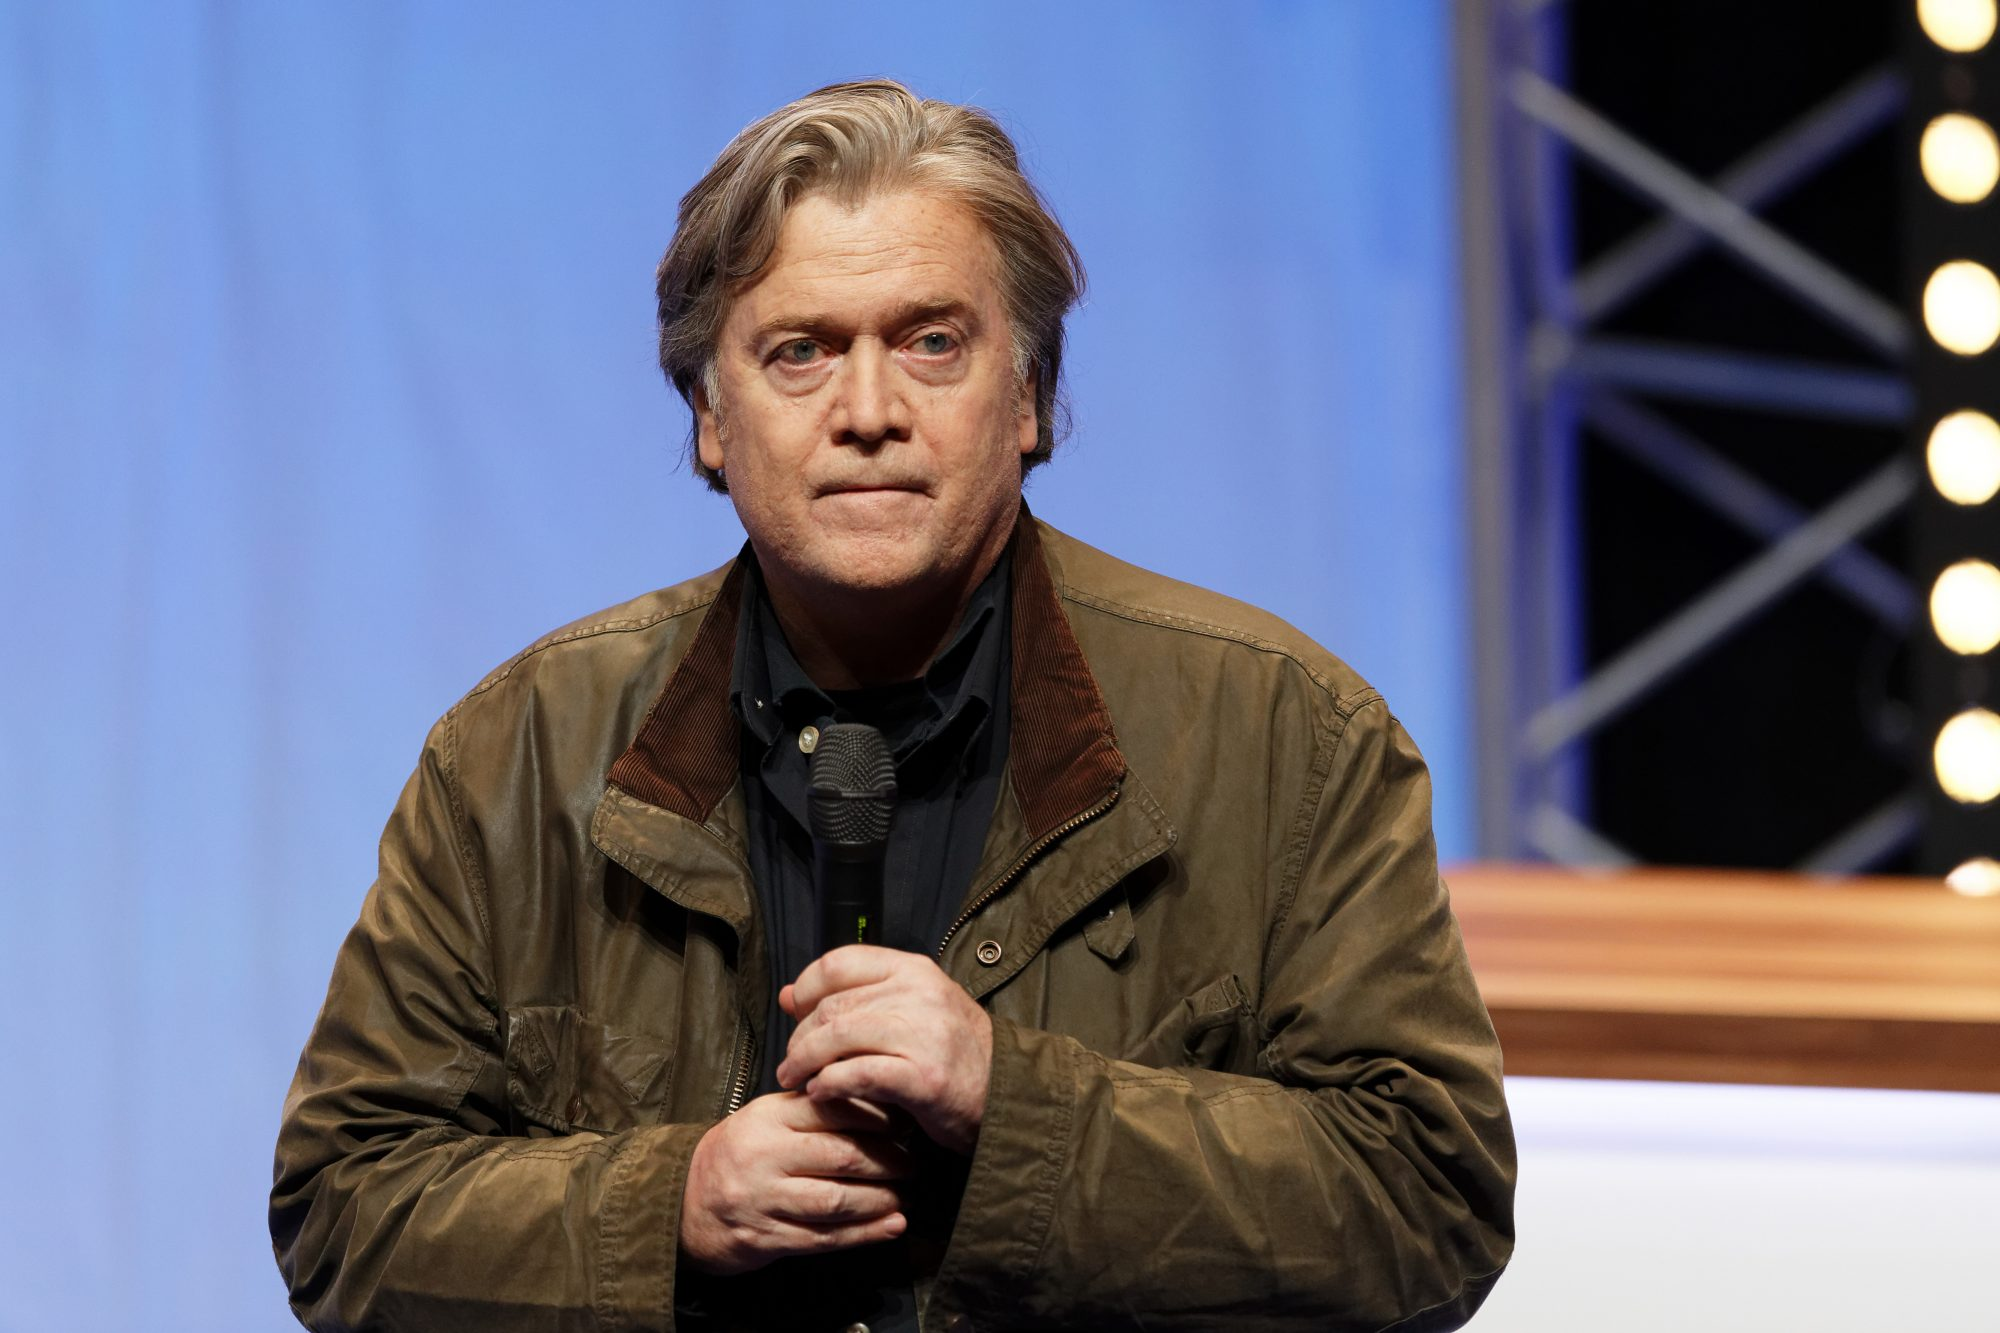 Steve Bannon, Former White House Strategist, Arrested and Charged With Fraud